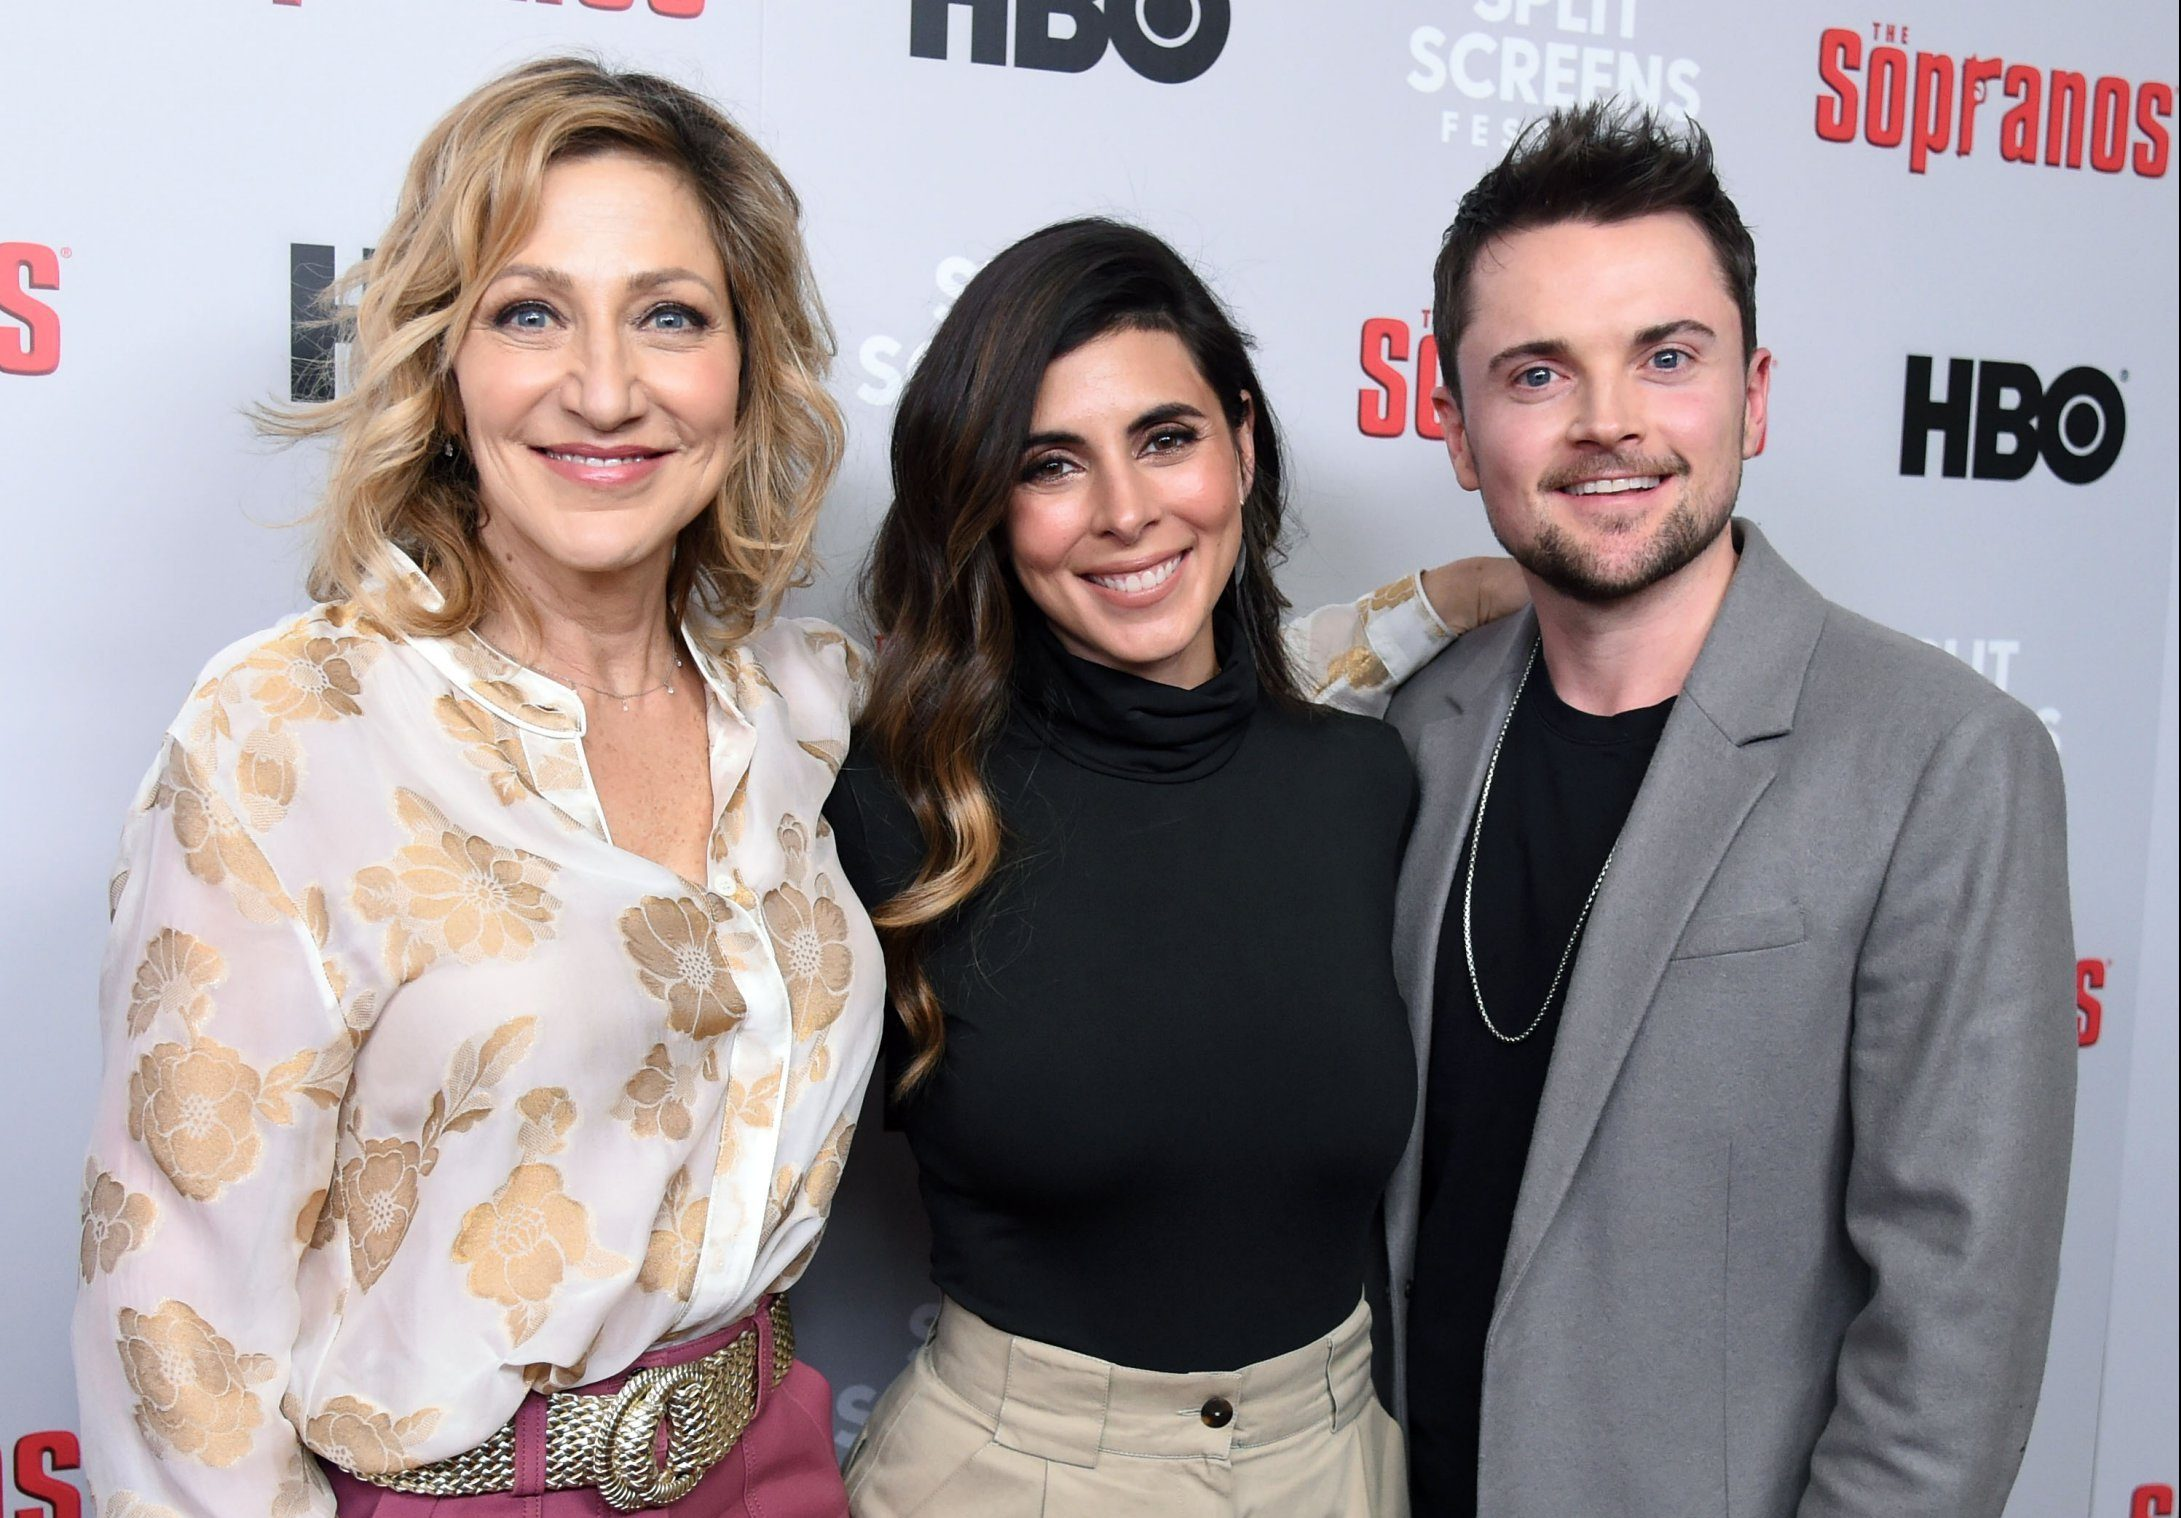 Mandatory Credit: Photo by Stephen Lovekin/REX (10052579k) Edie Falco, Jamie-Lynn Sigler and Robert Iler 'Woke Up This Morning: The Sopranos 20th Anniversary Celebration', Arrivals, New York, USA - 09 Jan 2019 The Sopranos??Film Festival, a weeklong tribute to David Chase'??s groundbreaking HBO series, opens Wednesday, January 9 with a??celebration at the SVA Theatre followed by five??days of live events at IFC Center. Presented by the Split Screens festival and organized by Split Screens Creative Director Matt Zoller Seitz, longtime TV critic for??New York magazine, the program screens classic films and??Sopranos??episodes to explore the series influences and legacy on the occasion of its 20th??anniversary.